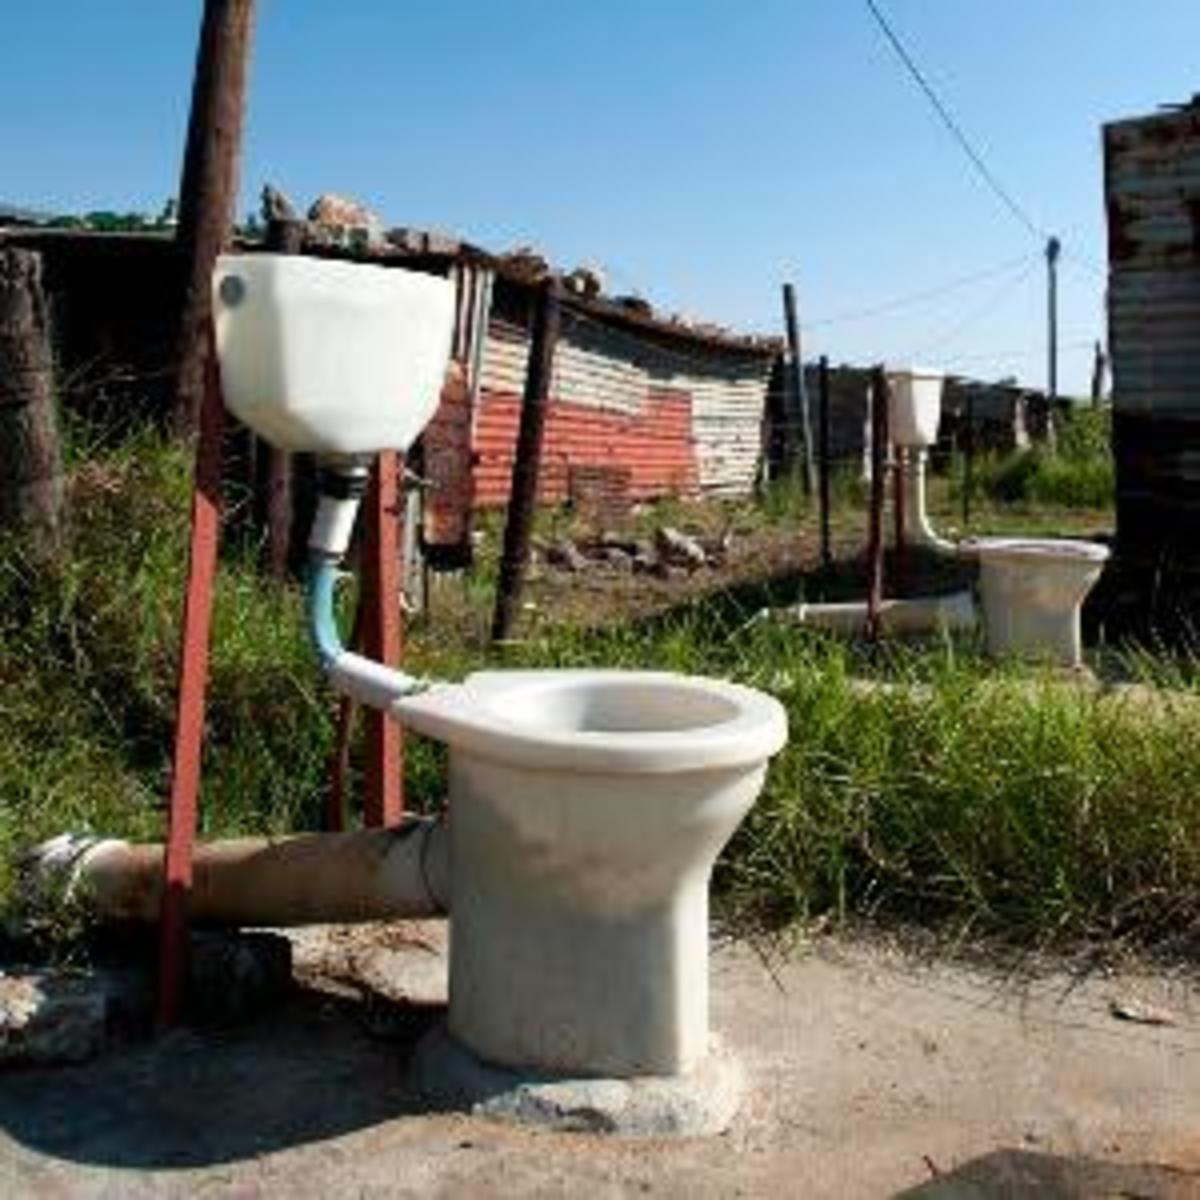 Toilet tenders stink because the people they were built for complain that they were left as seen on this picture. These are the unclosed toilets in Rammulotsi, near Viljoenskroon in the Free State, South Africa